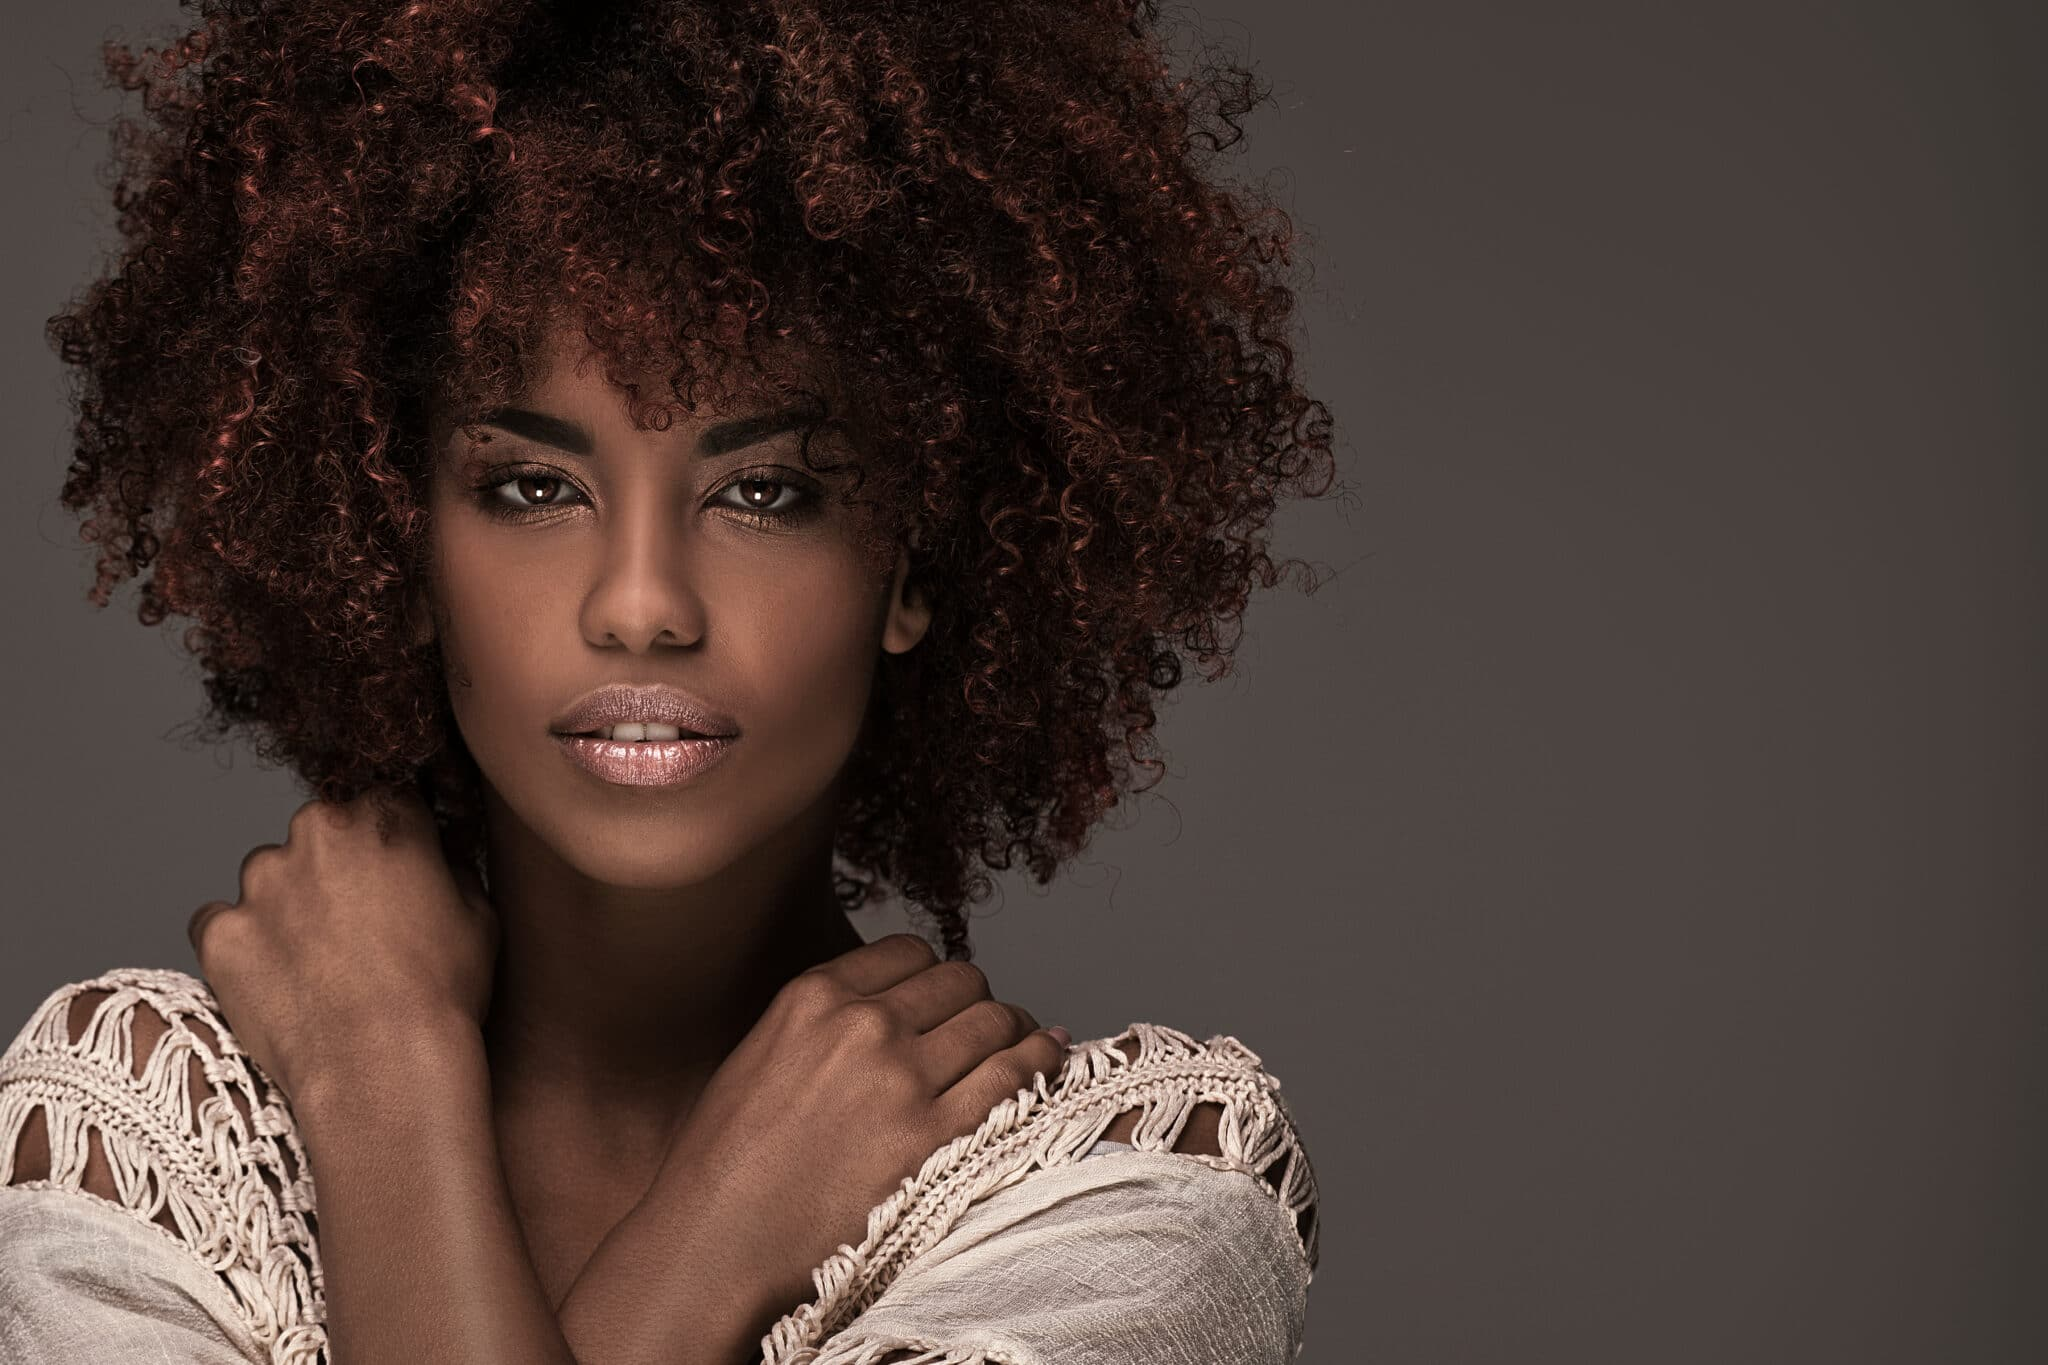 Beauty portrait of african american woman with afro hairstyle and glamour makeup.